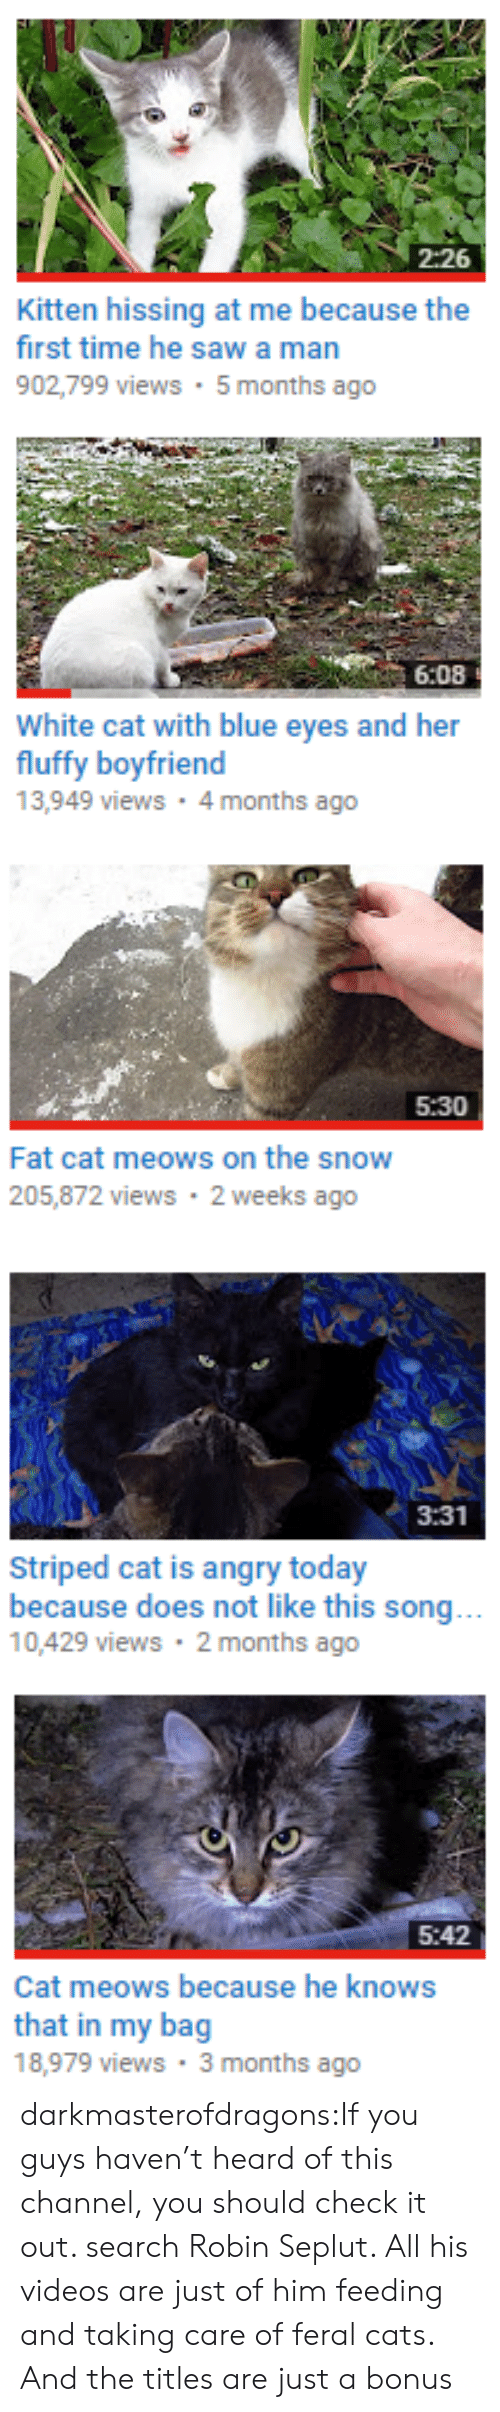 Meows: 2:26  Kitten hissing at me because the  first time he sawa man  902,799 views 5 months ago   6:08  White cat with blue eyes and her  fluffy boyfriend  13,949 views 4 months ago   5:30  Fat cat meows on the snow  205,872 views 2 weeks ago   3:31  Striped cat is angry today  because does not like this song...  10,429 views 2 months ago   5:42  Cat meows because he knows  that in my bag  18,979 views 3 months ago darkmasterofdragons:If you guys haven't heard of this channel, you should check it out. search Robin Seplut. All his videos are just of him feeding and taking care of feral cats. And the titles are just a bonus